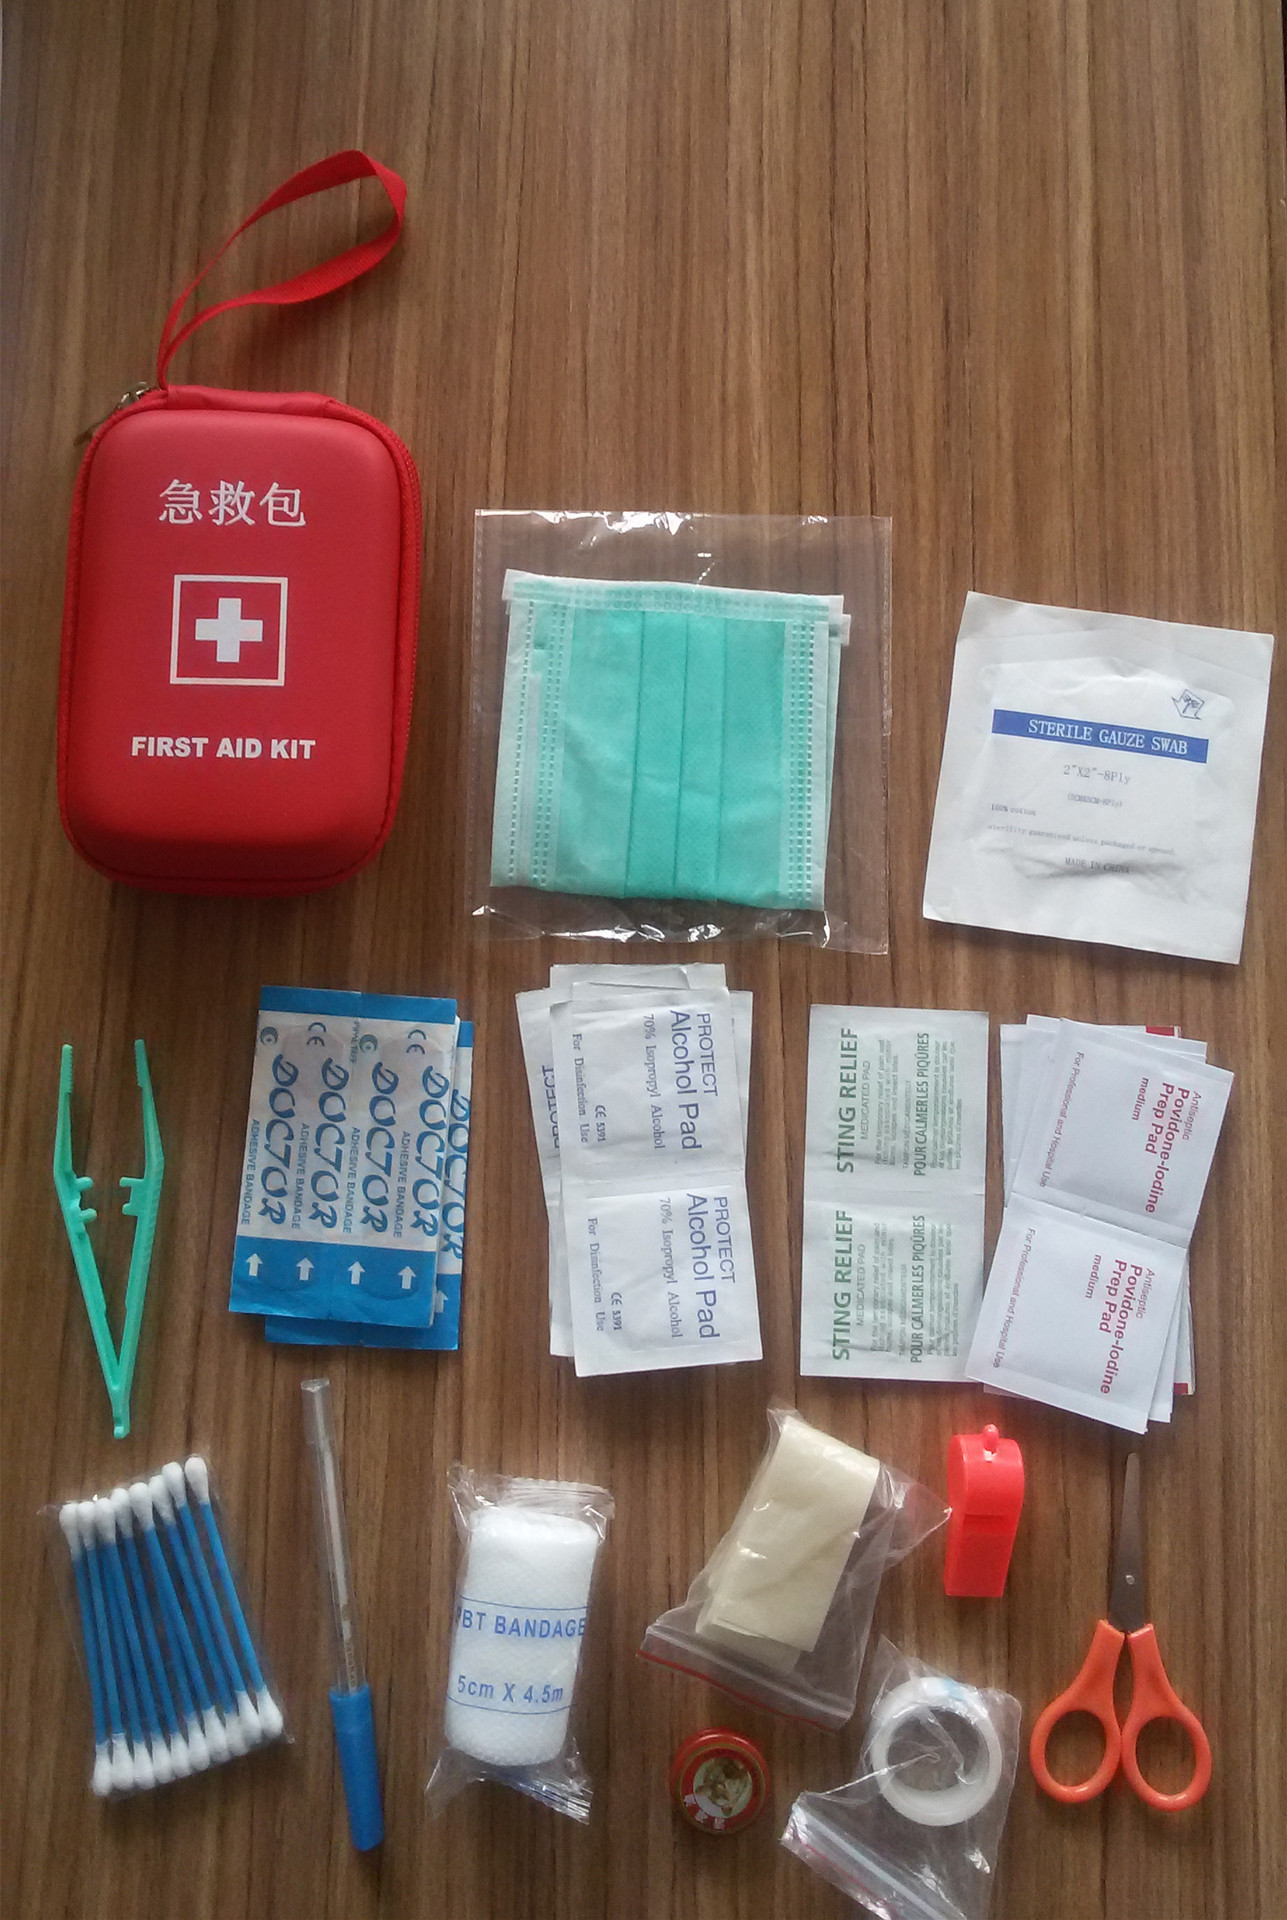 16 in 1 portable first-aid bag emergency medicine package travel camping life Bag Mini First Aid Kit 14*10*4.5cm(China (Mainland))